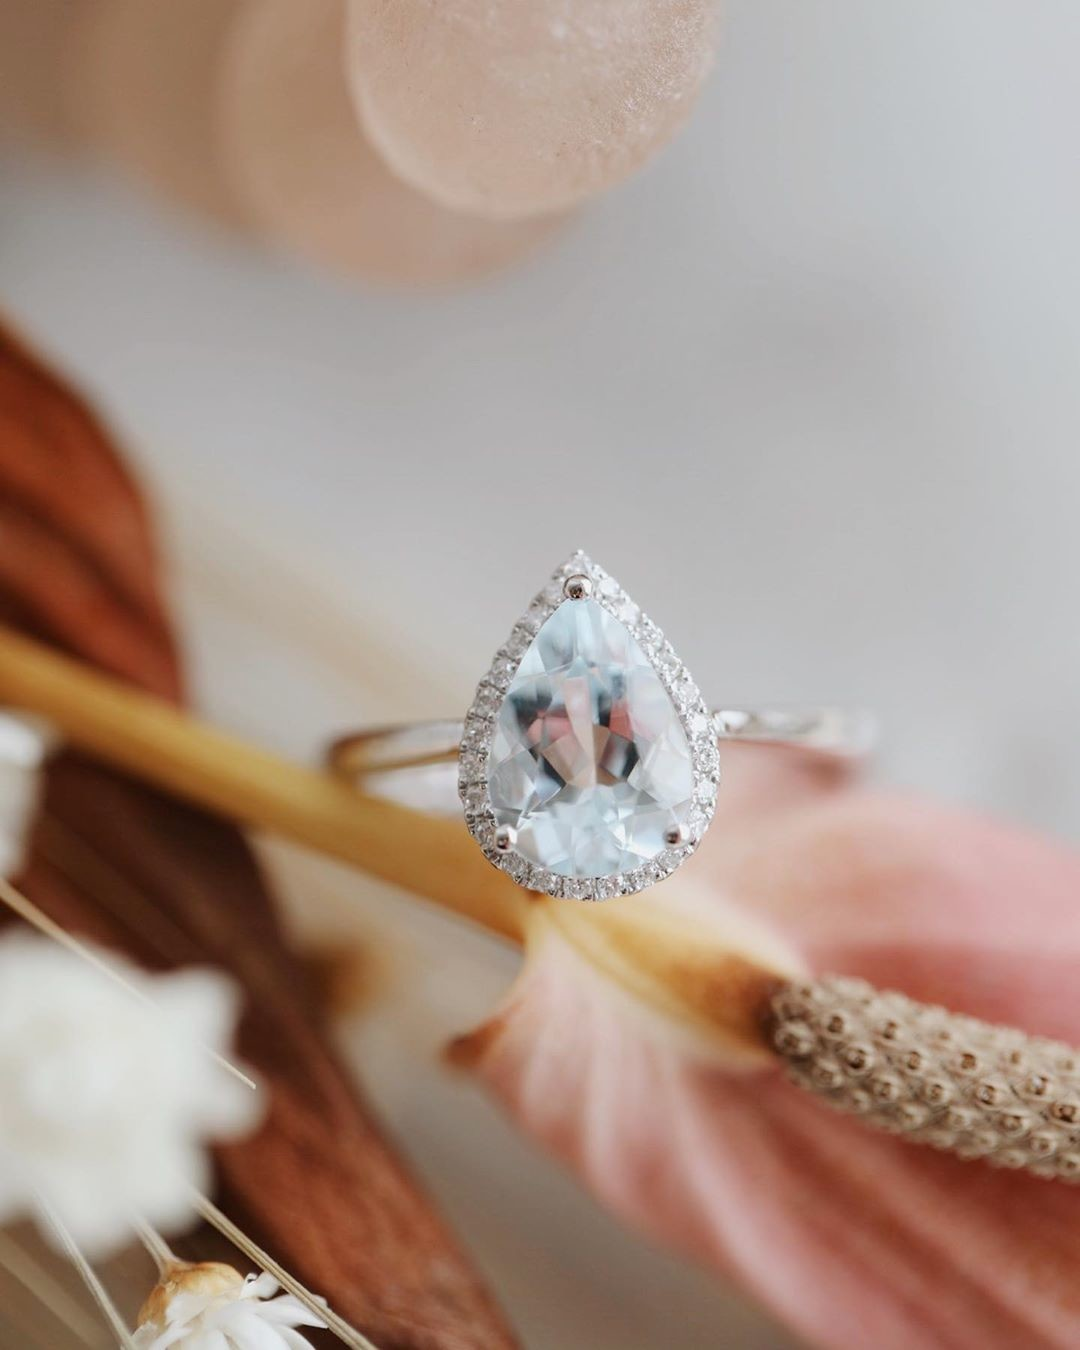 The perfect pear aquamarine ring with a diamond halo in 18k white gold, available now at our Tennyson location and online!